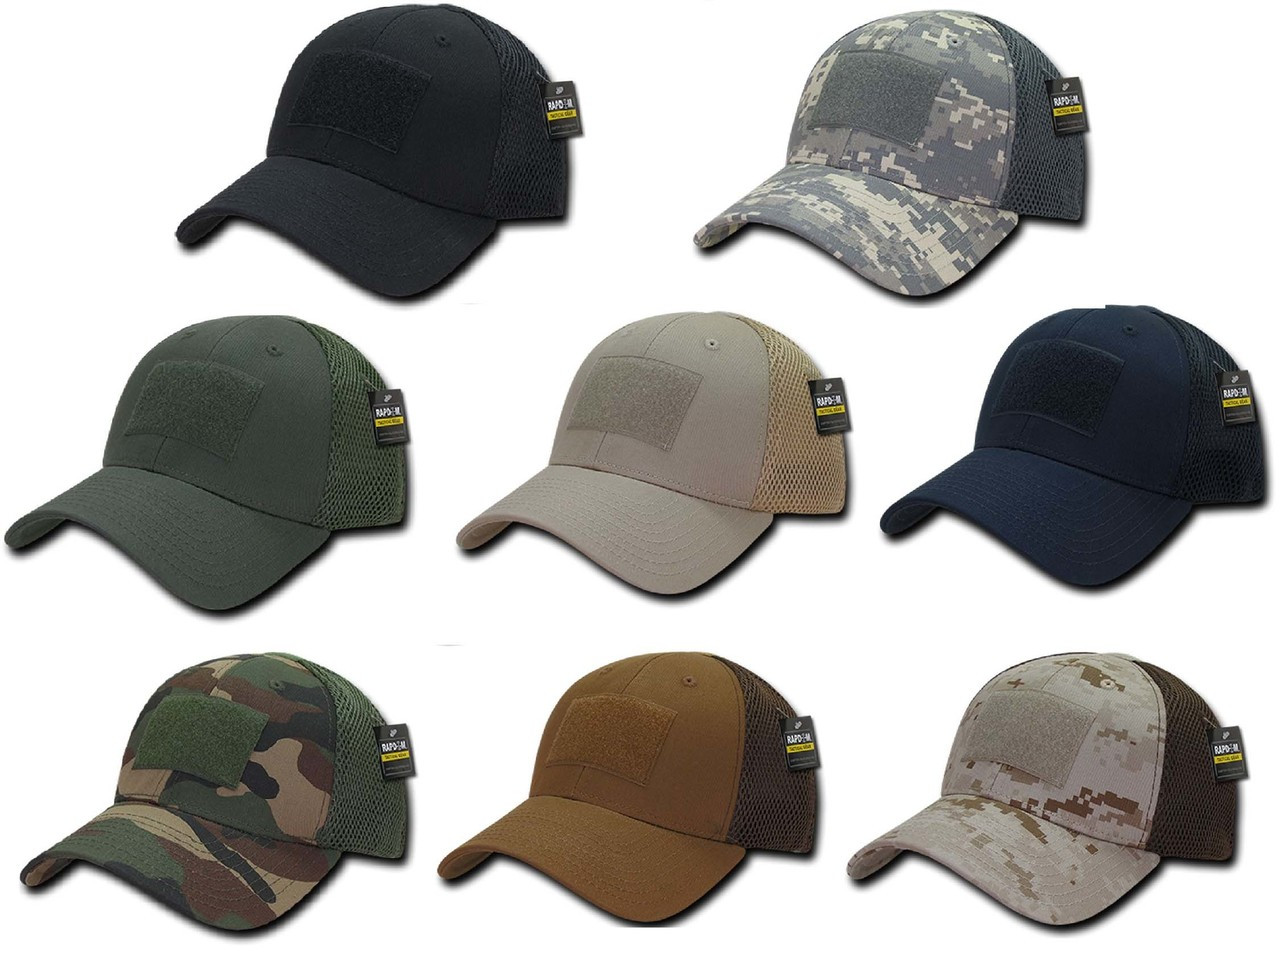 Low Crown MESH FLEX Tactical Operator Contractor Military Fit Baseball Hat  Cap a52e5a50945